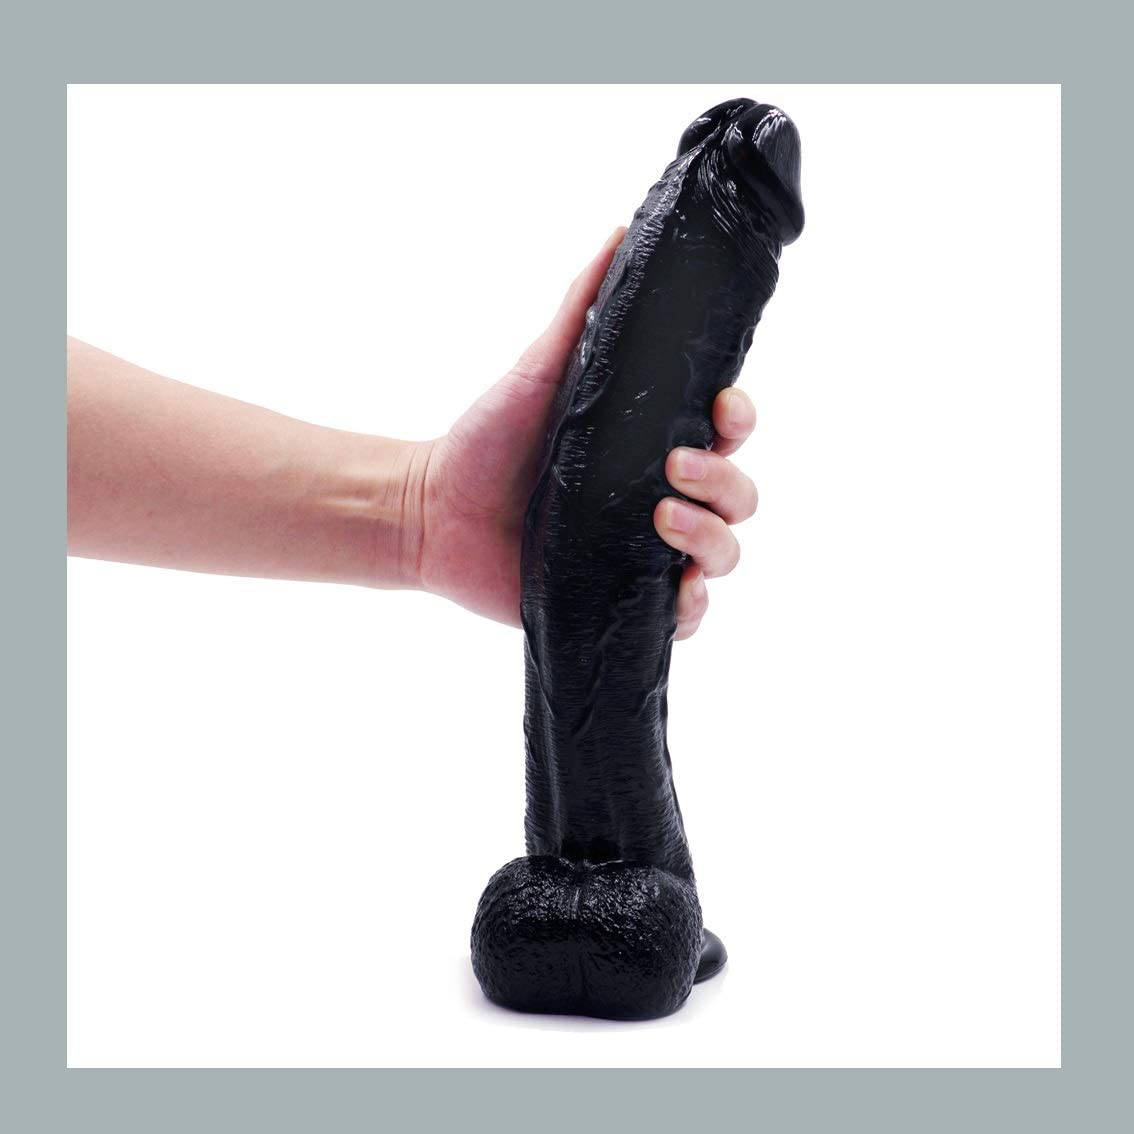 12in Black Realistic Dillo, Bendable Adullt Toy Fun Free Manual for Student- Can Stand The Test of Time -XQG